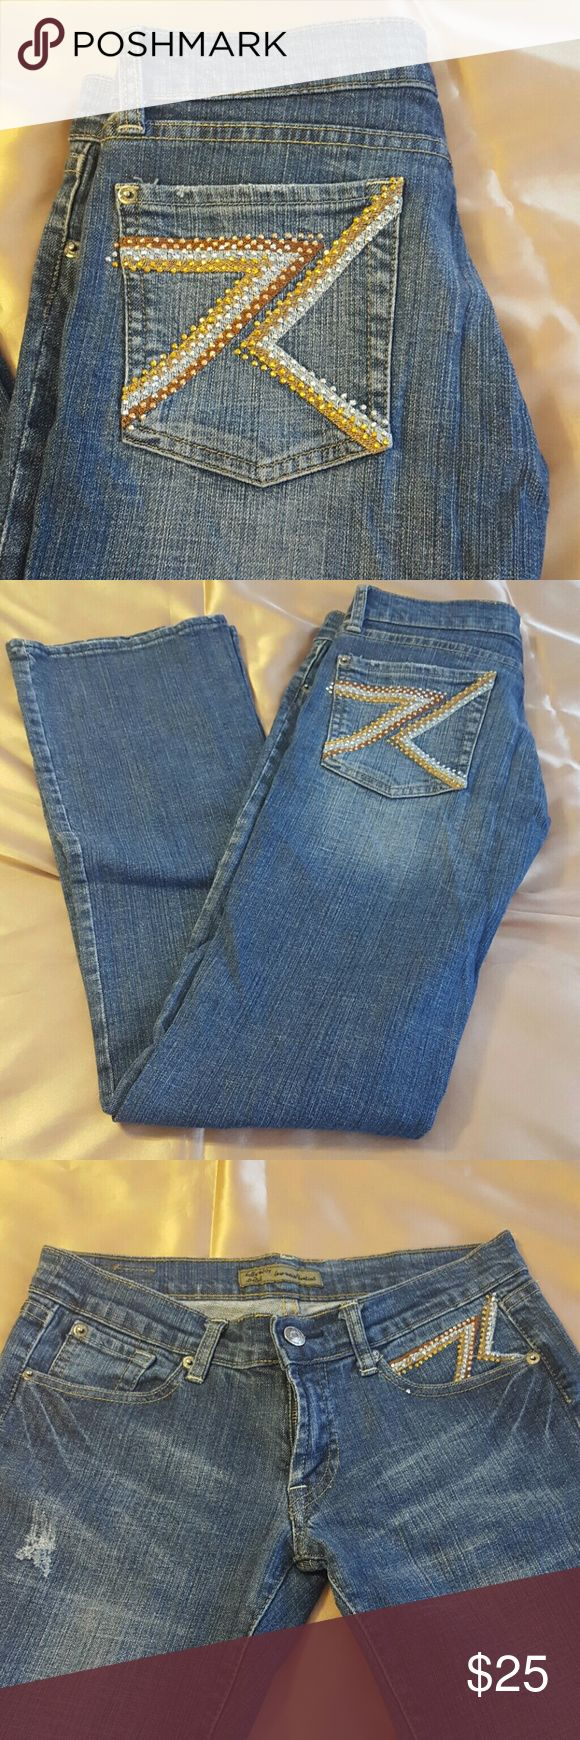 Kelley #007 low waist bootcut size 28 Very cute bootcut blue jeans. with beautiful embroidery and metallic design on back pockets and in front. Use once it's in a great condition. Kelley 007 Jeans Boot Cut